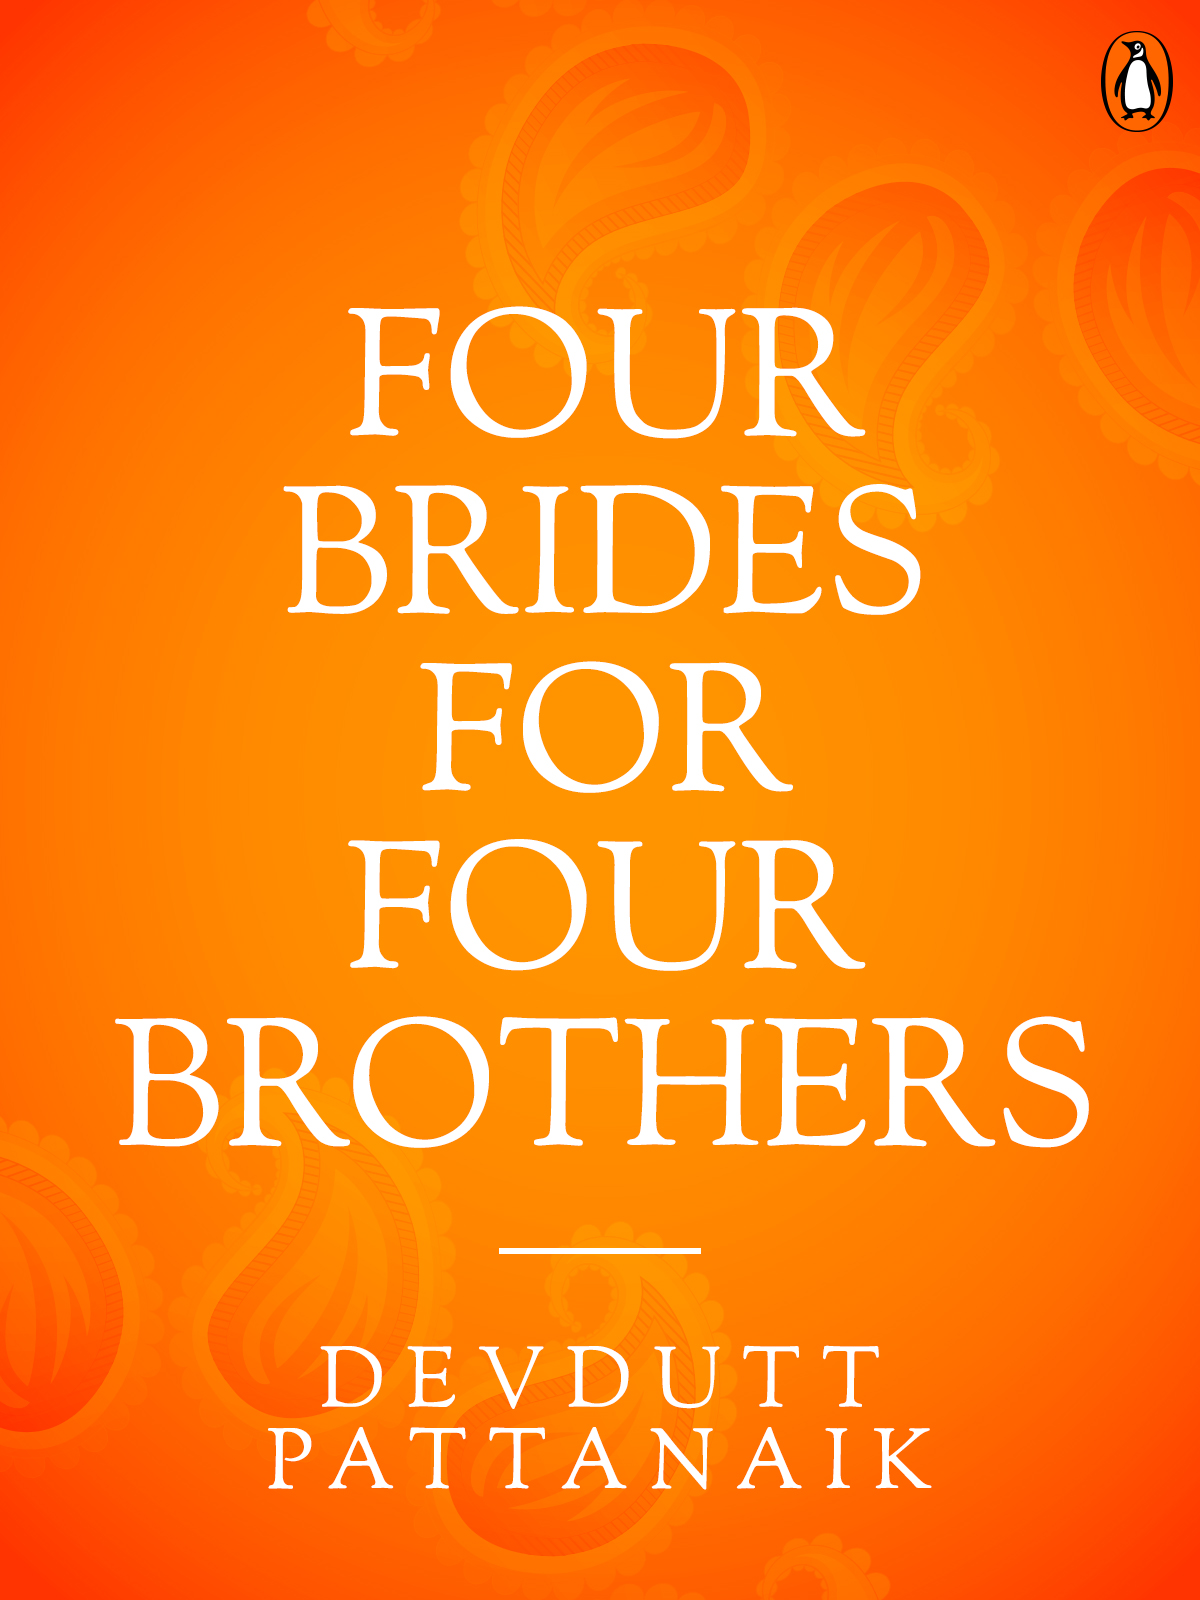 Four Brides for Four Brothers